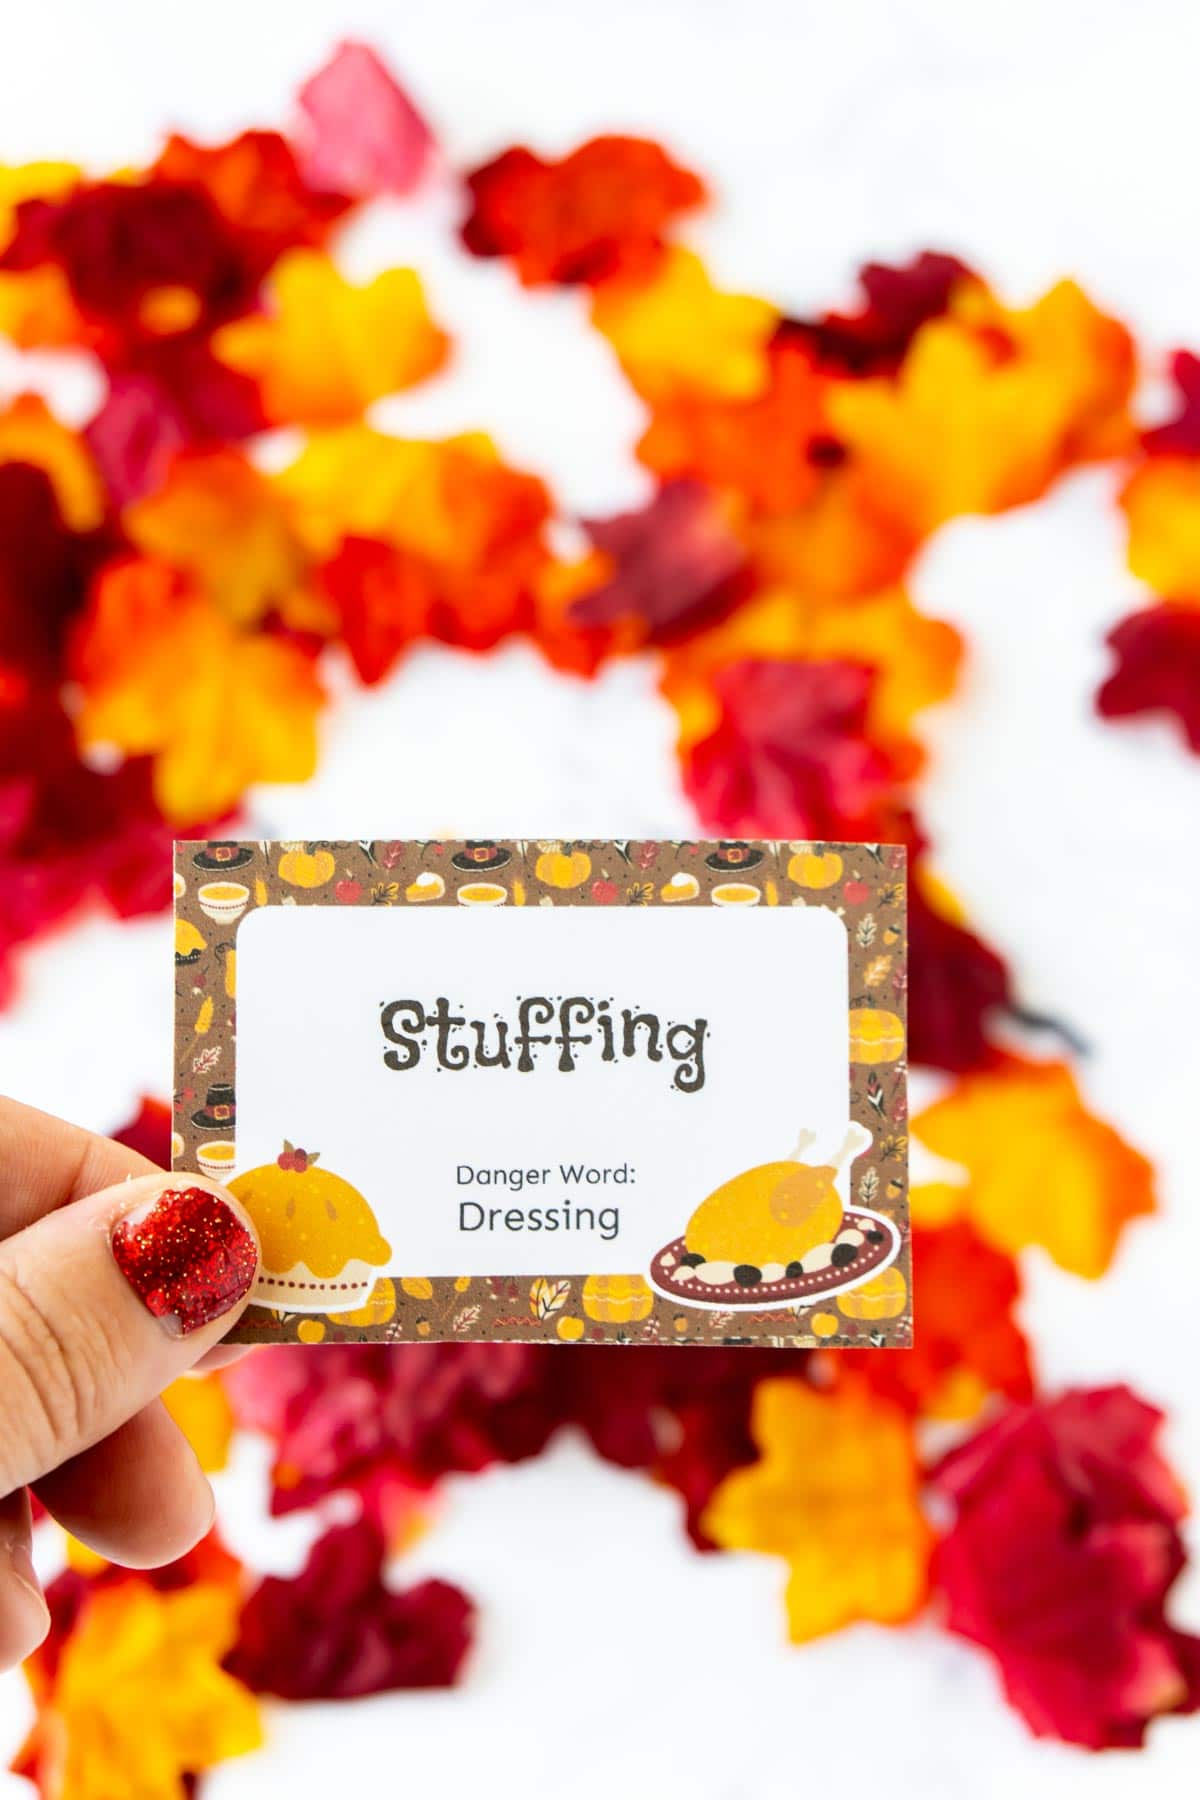 Thanksgiving danger word card with the word stuffing on it